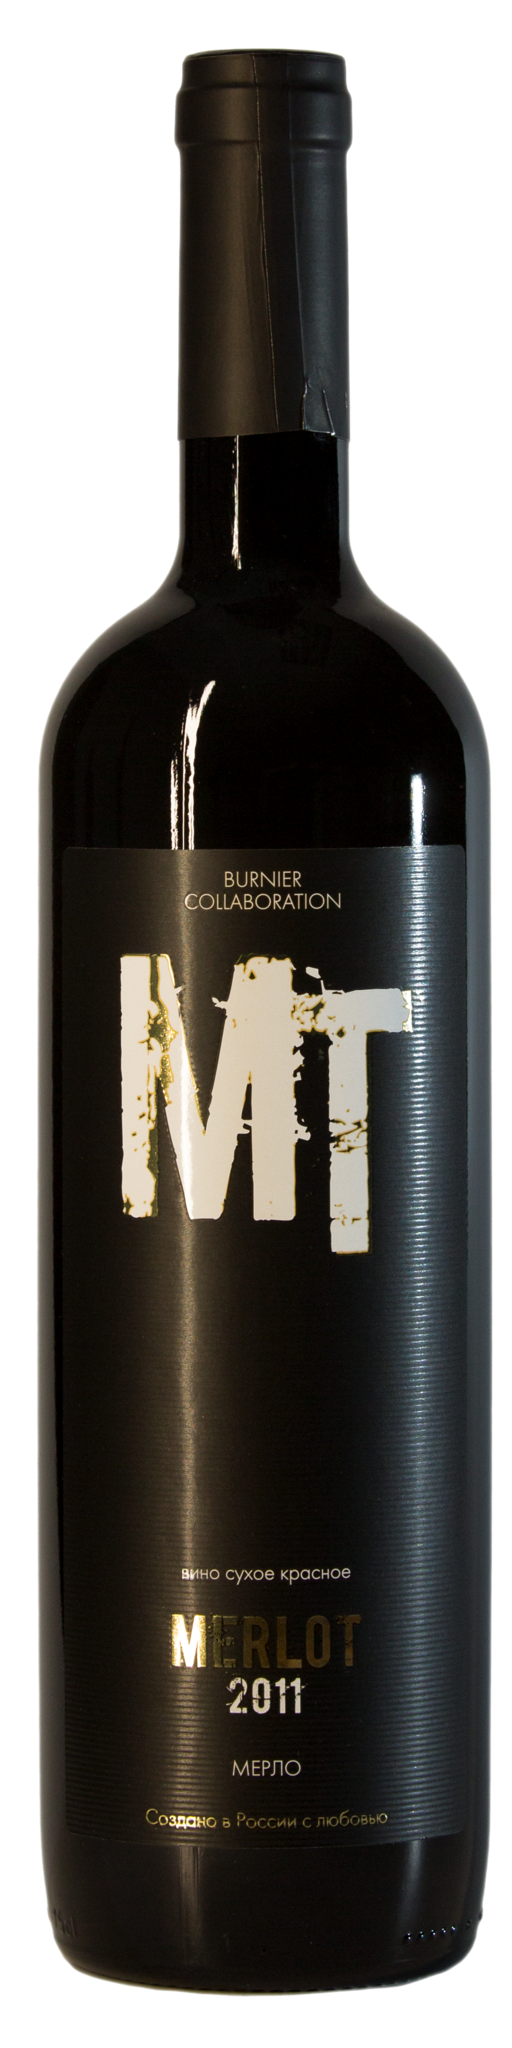 BURNIER COLLABORATION MERLOT